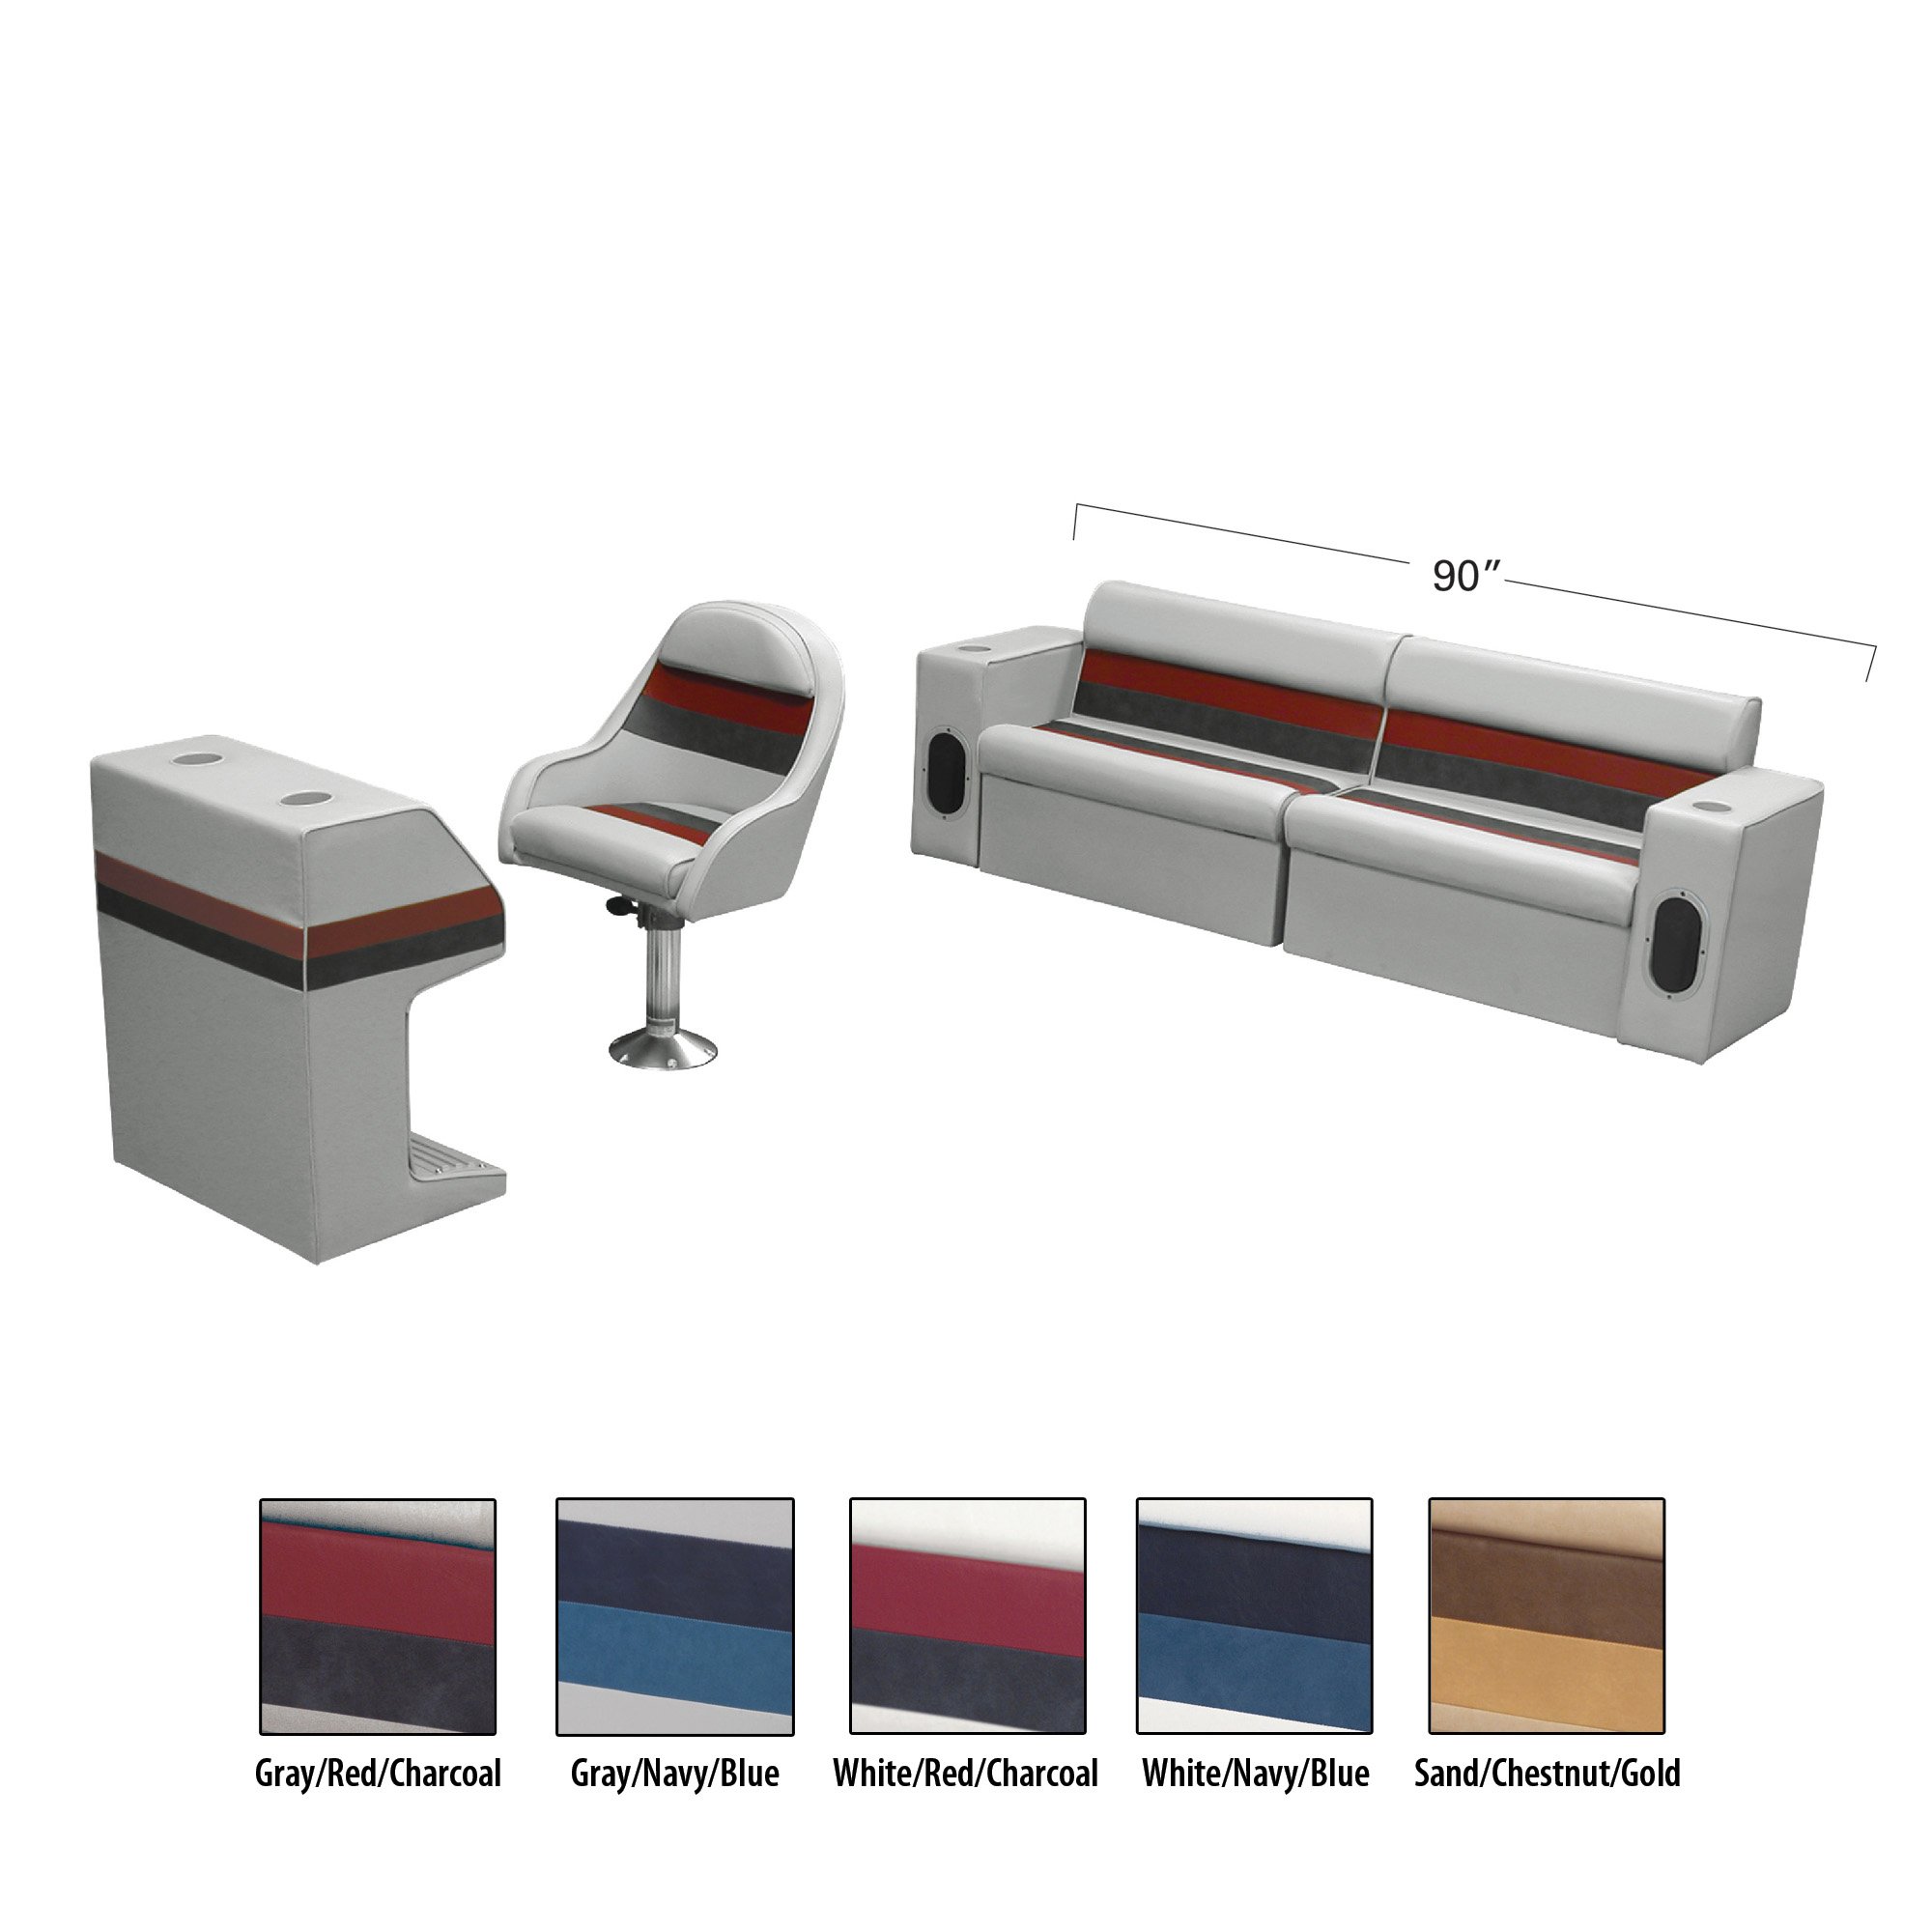 Toonmate Deluxe Pontoon Furniture w/Classic Base(no toe kick)-Rear Basic Package